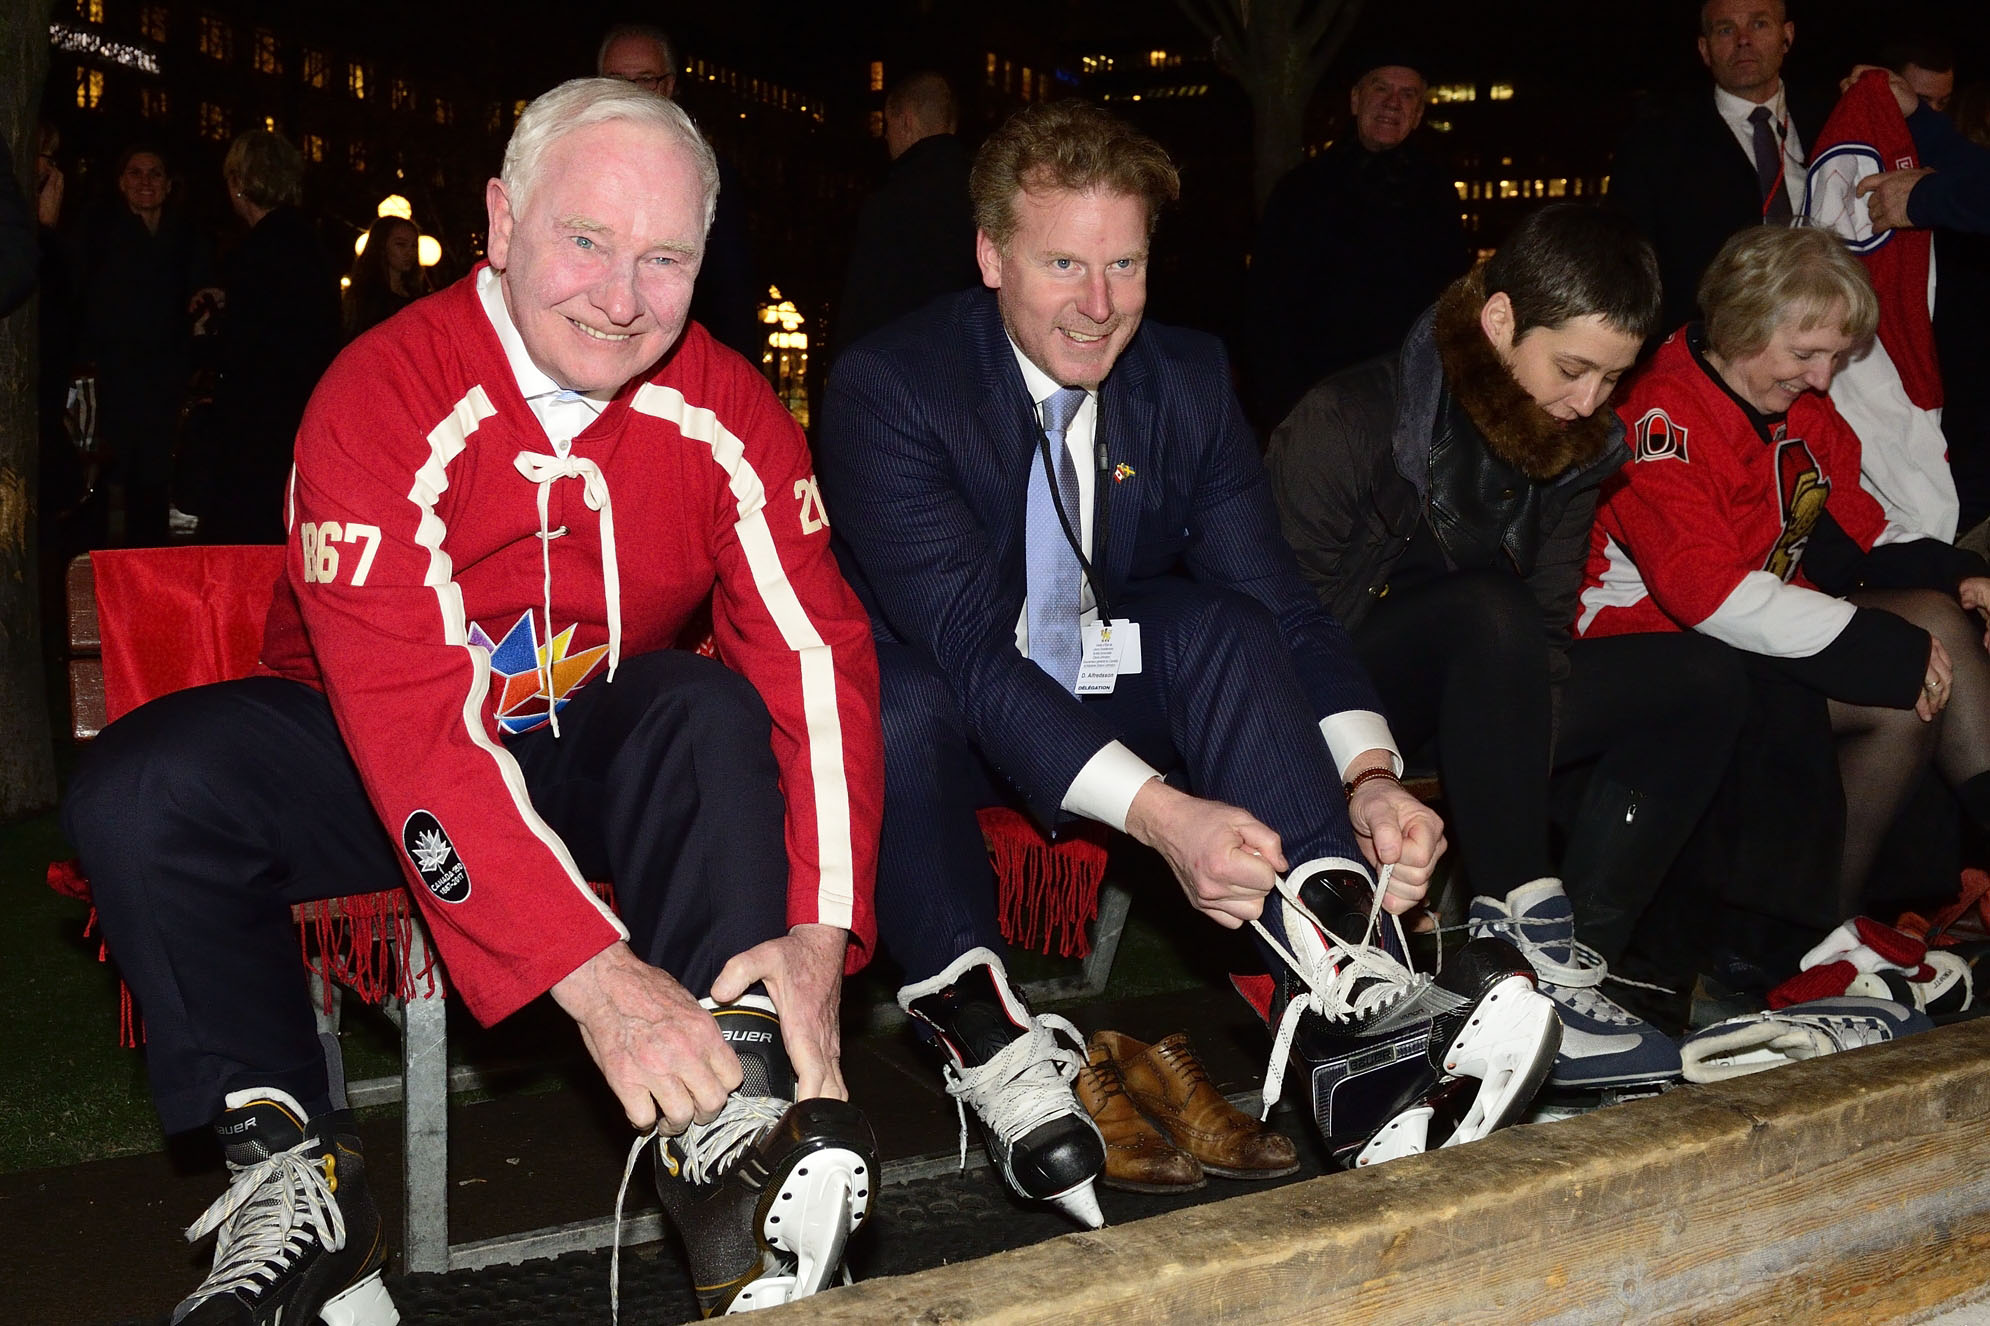 After a day of meetings, His Excellency took time to enjoy some skating, a sport well loved by both Canadians and Swedes. Former Swedish NHL player Daniel Alfredsson also laced up his skates.